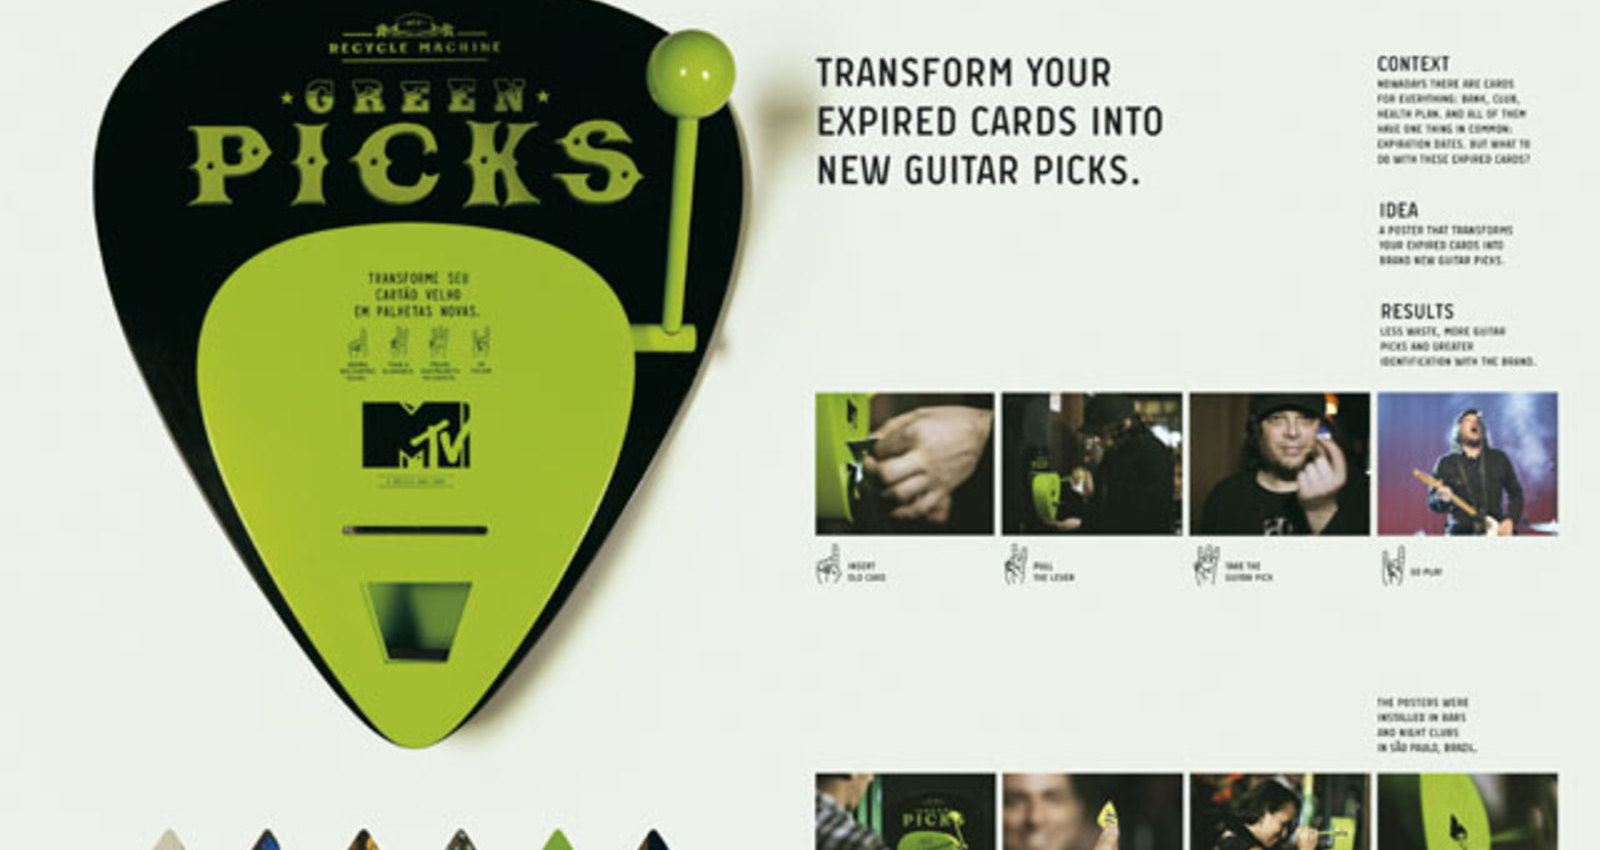 Green Picks